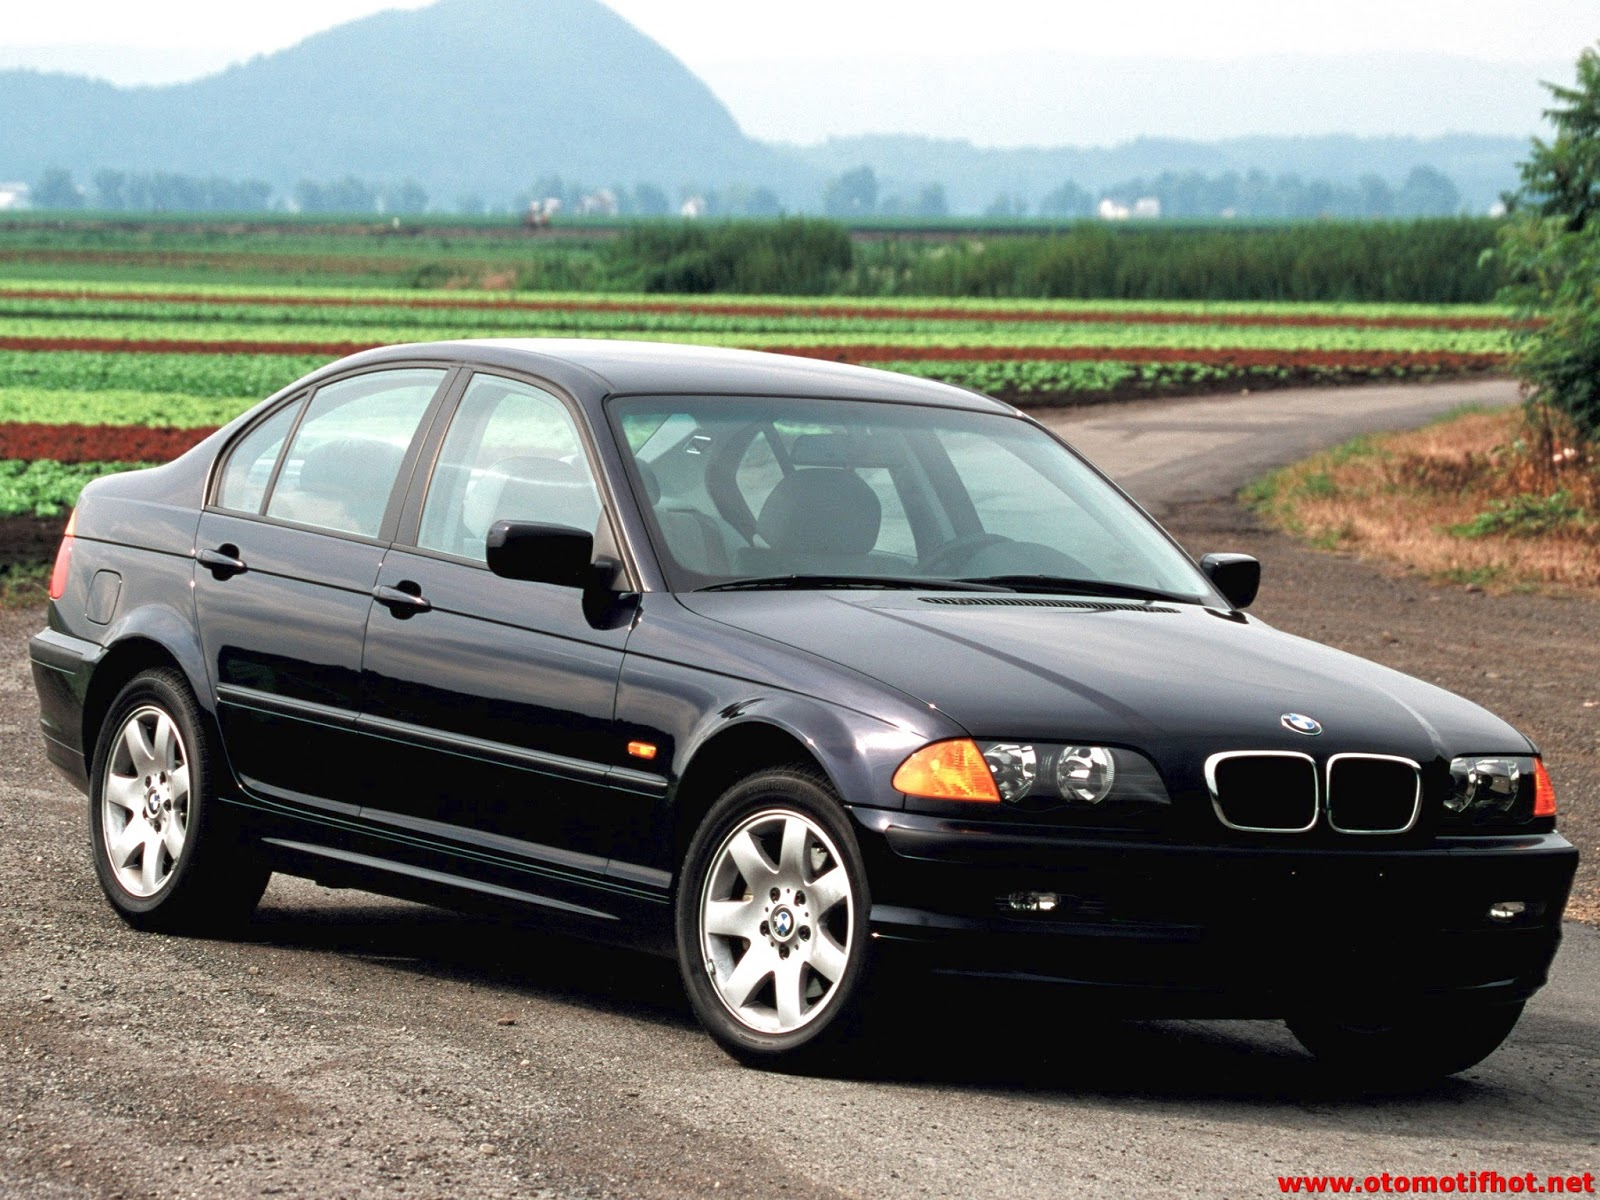 spesifikasi lengkap sedan bmw 318i e36 dan e46. Black Bedroom Furniture Sets. Home Design Ideas